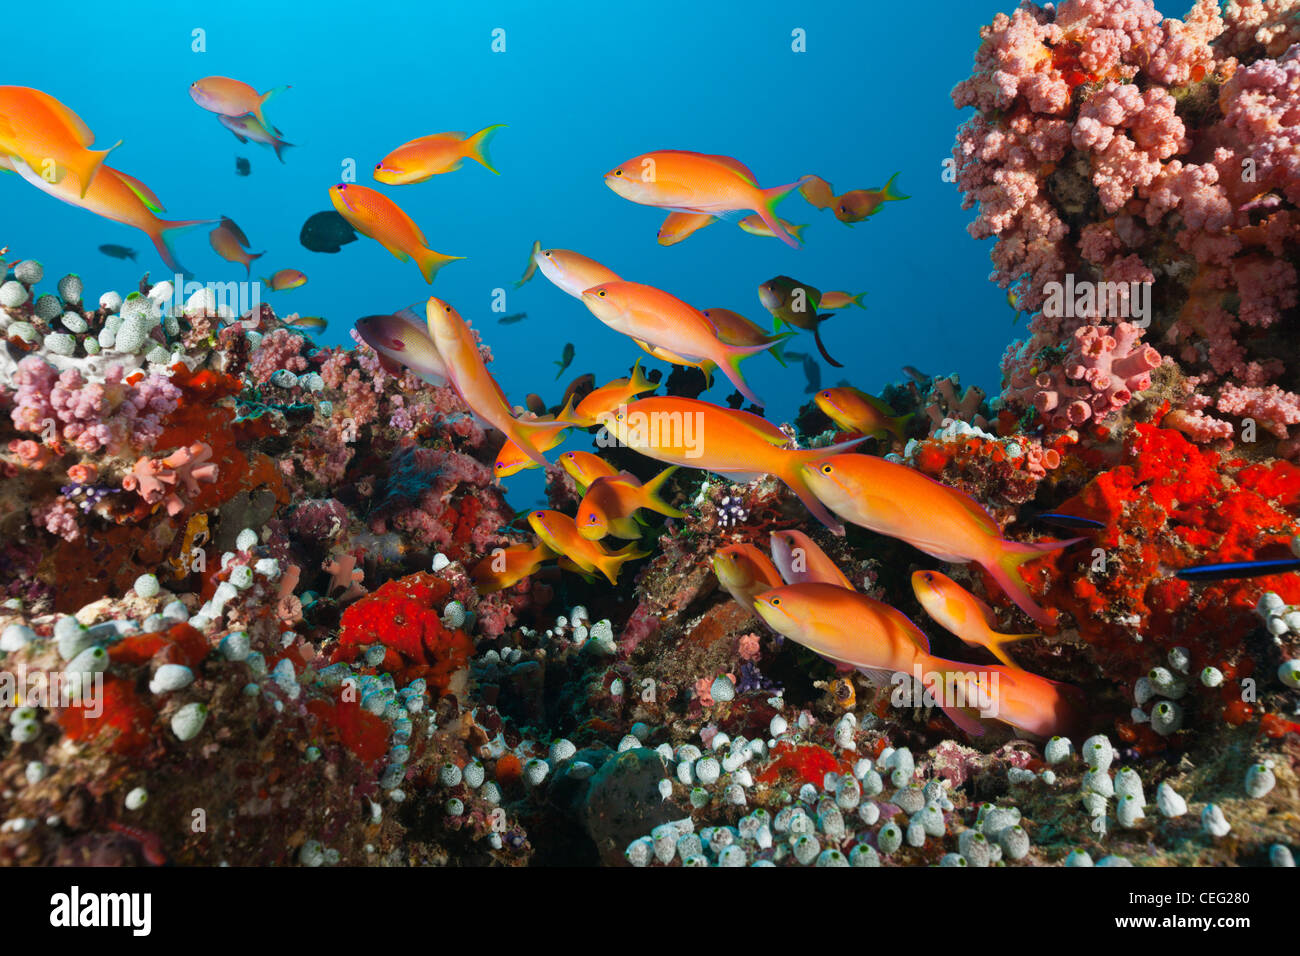 Shoal of Threadfin Anthias in Coral Reef, Nemanthias carberryi, Baa Atoll, Indian Ocean, Maldives - Stock Image